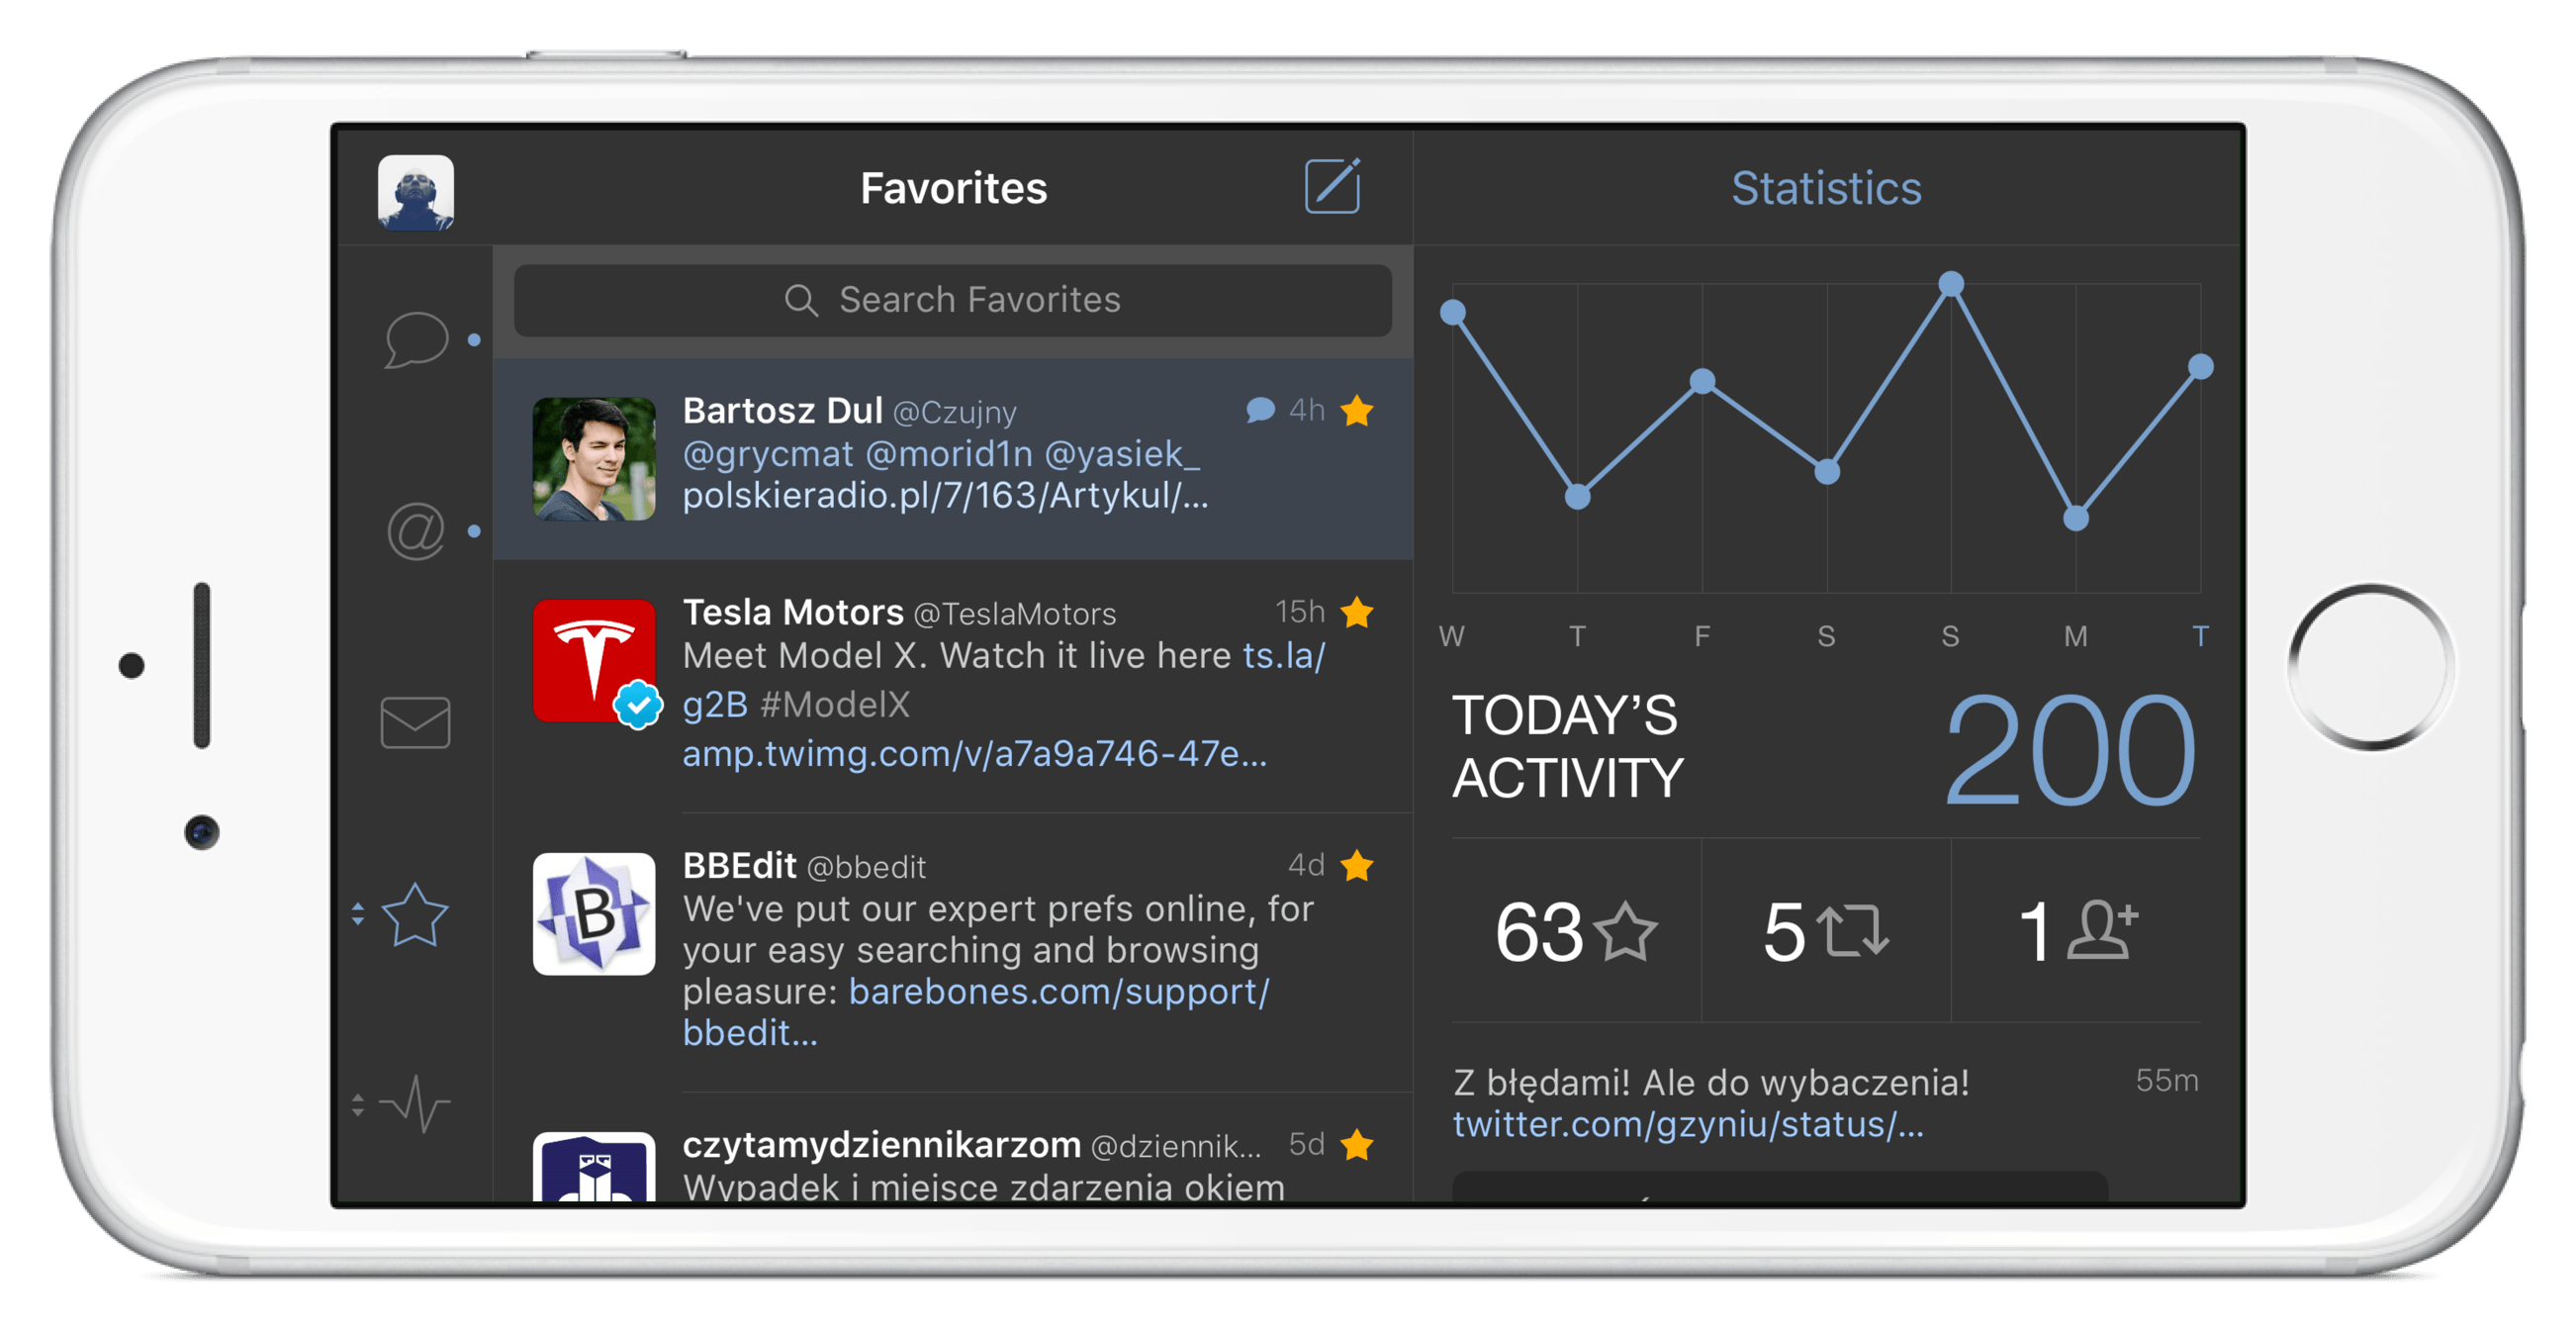 Tweetbot 4 - iPhone - landscape favs stats 02 - device